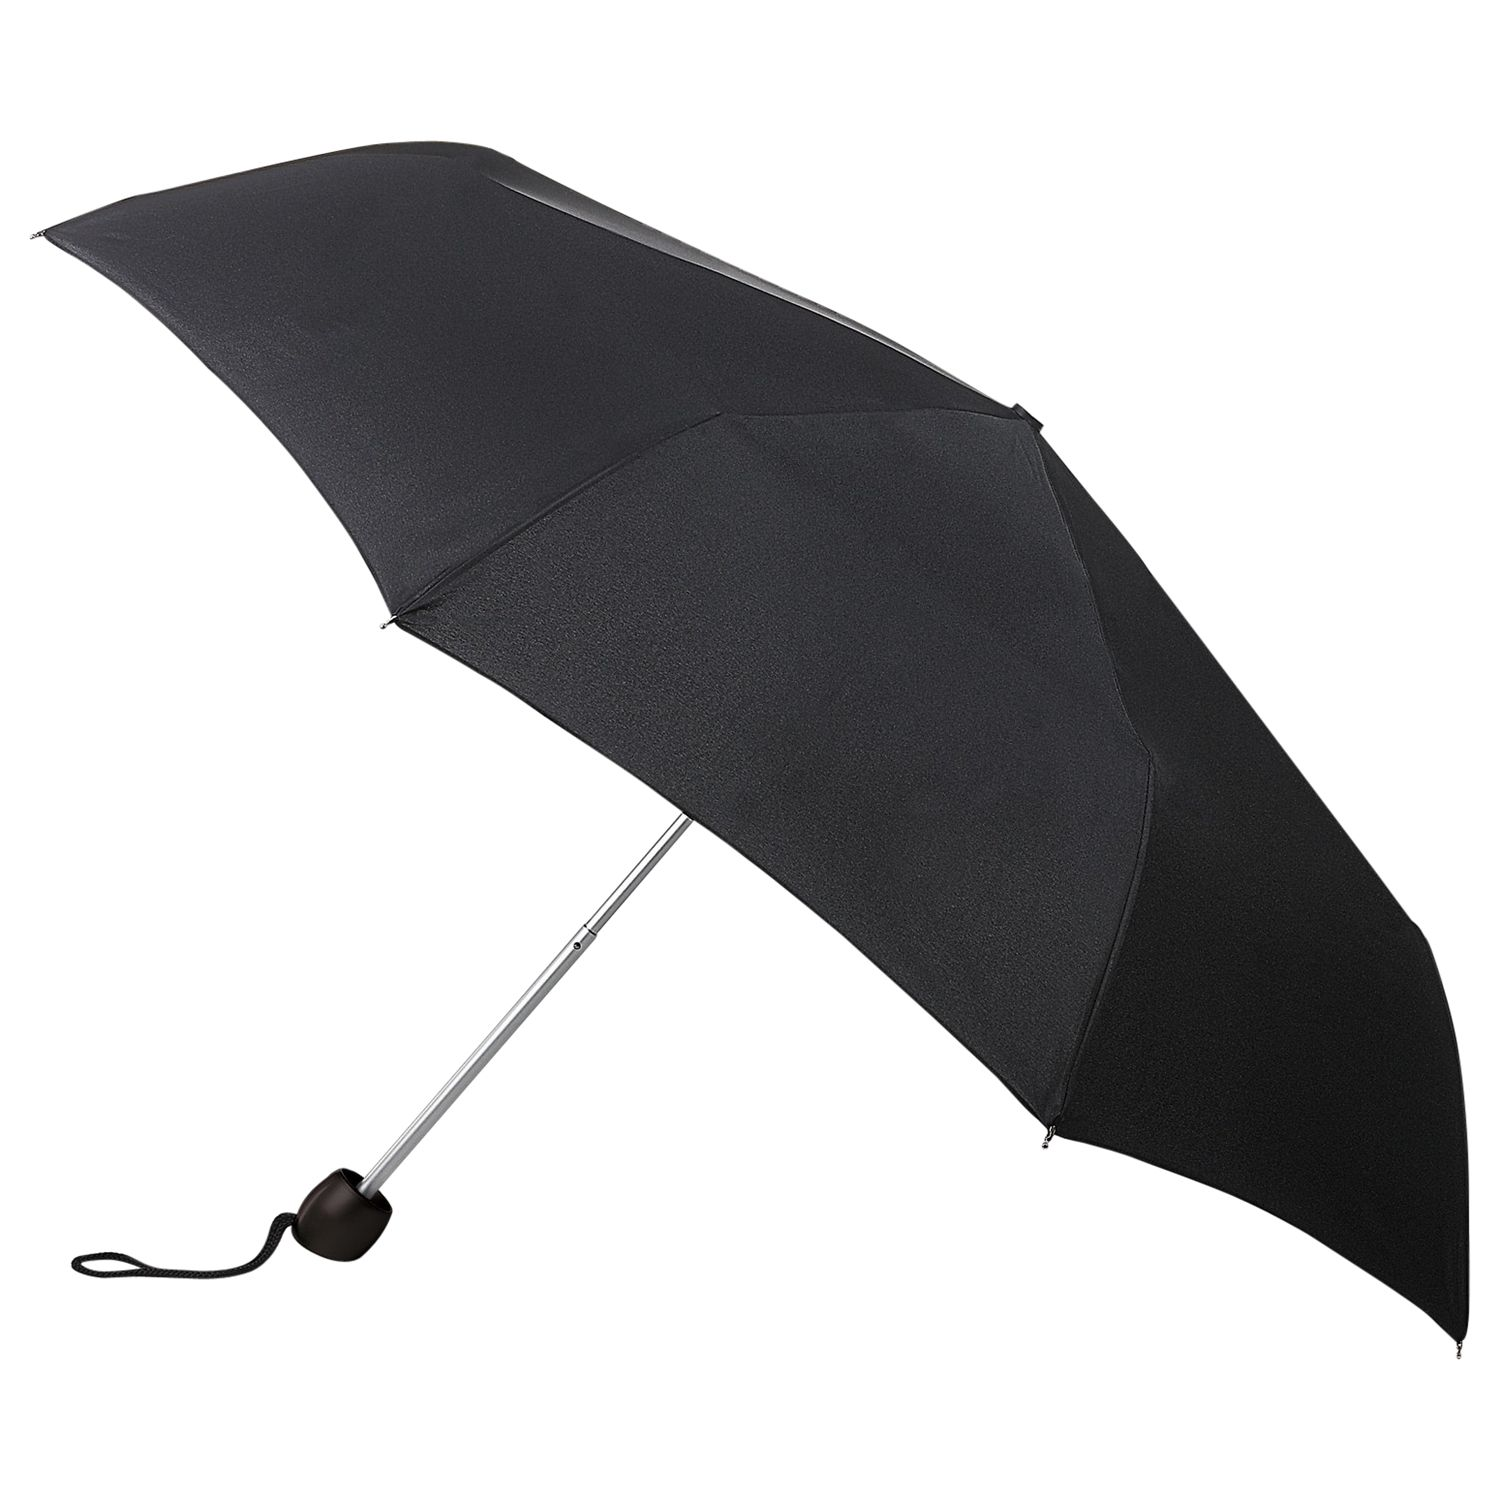 Fulton Fulton Minilite Umbrella, Black